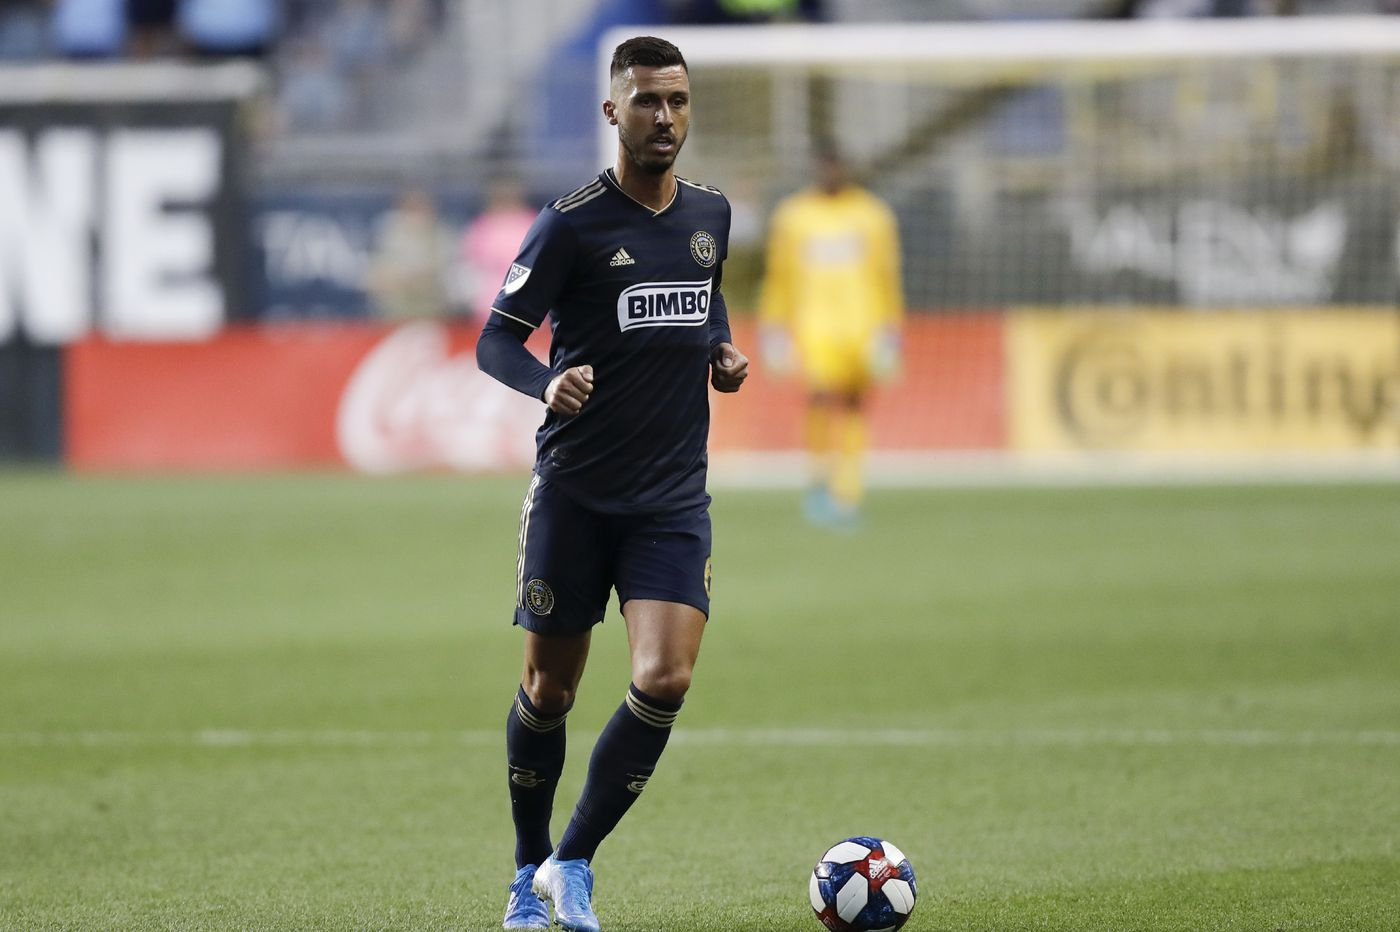 Union's Haris Medunjanin ready to face Pity Martínez, Atlanta United in battle for first place